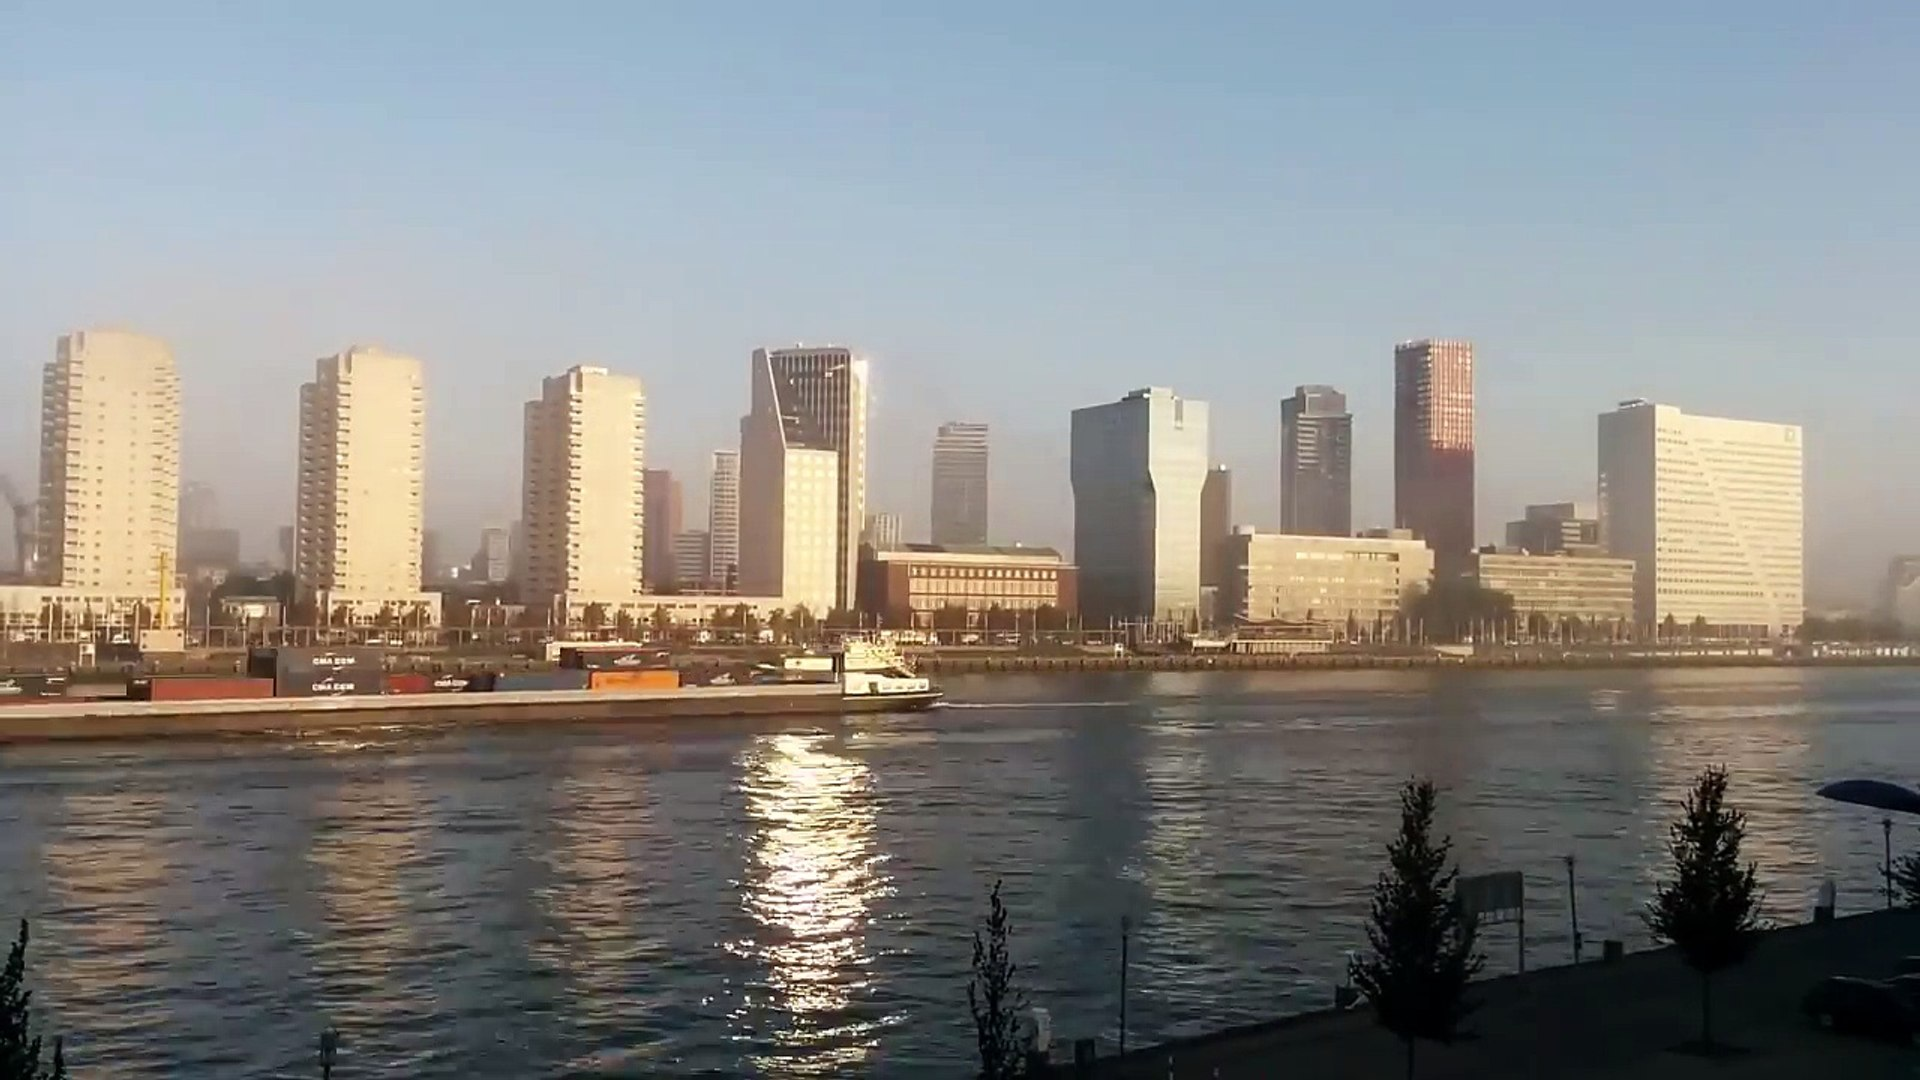 Rotterdam in 3 minutes - Travel documentary of a the Gateway to Europe